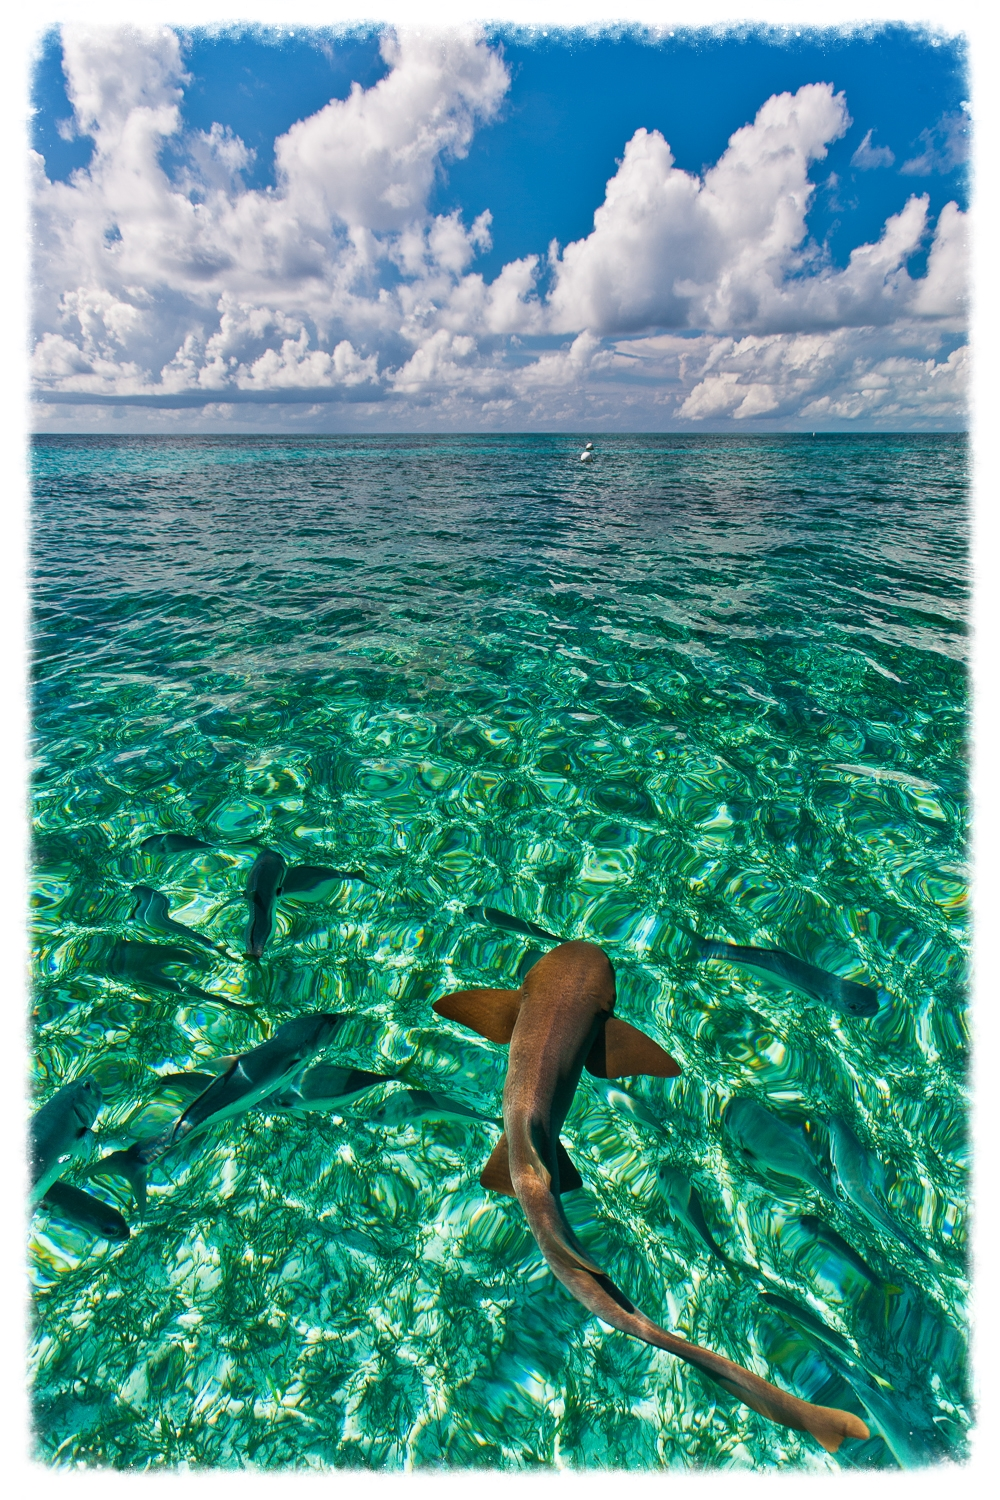 belize_shark1.jpg